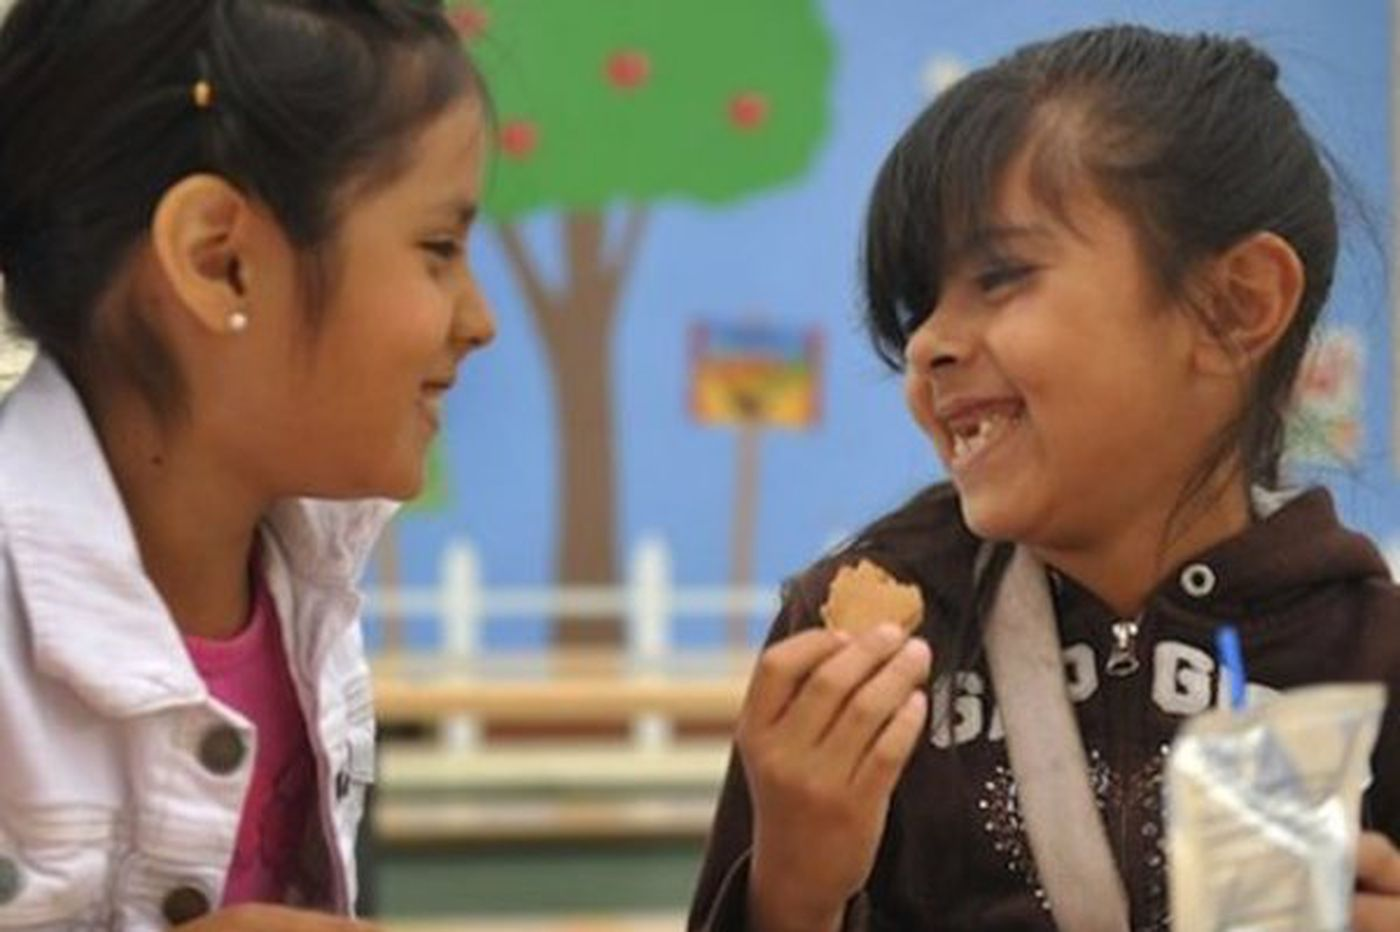 School meals face rules on fat, meat, veggies – but no limits on sugar